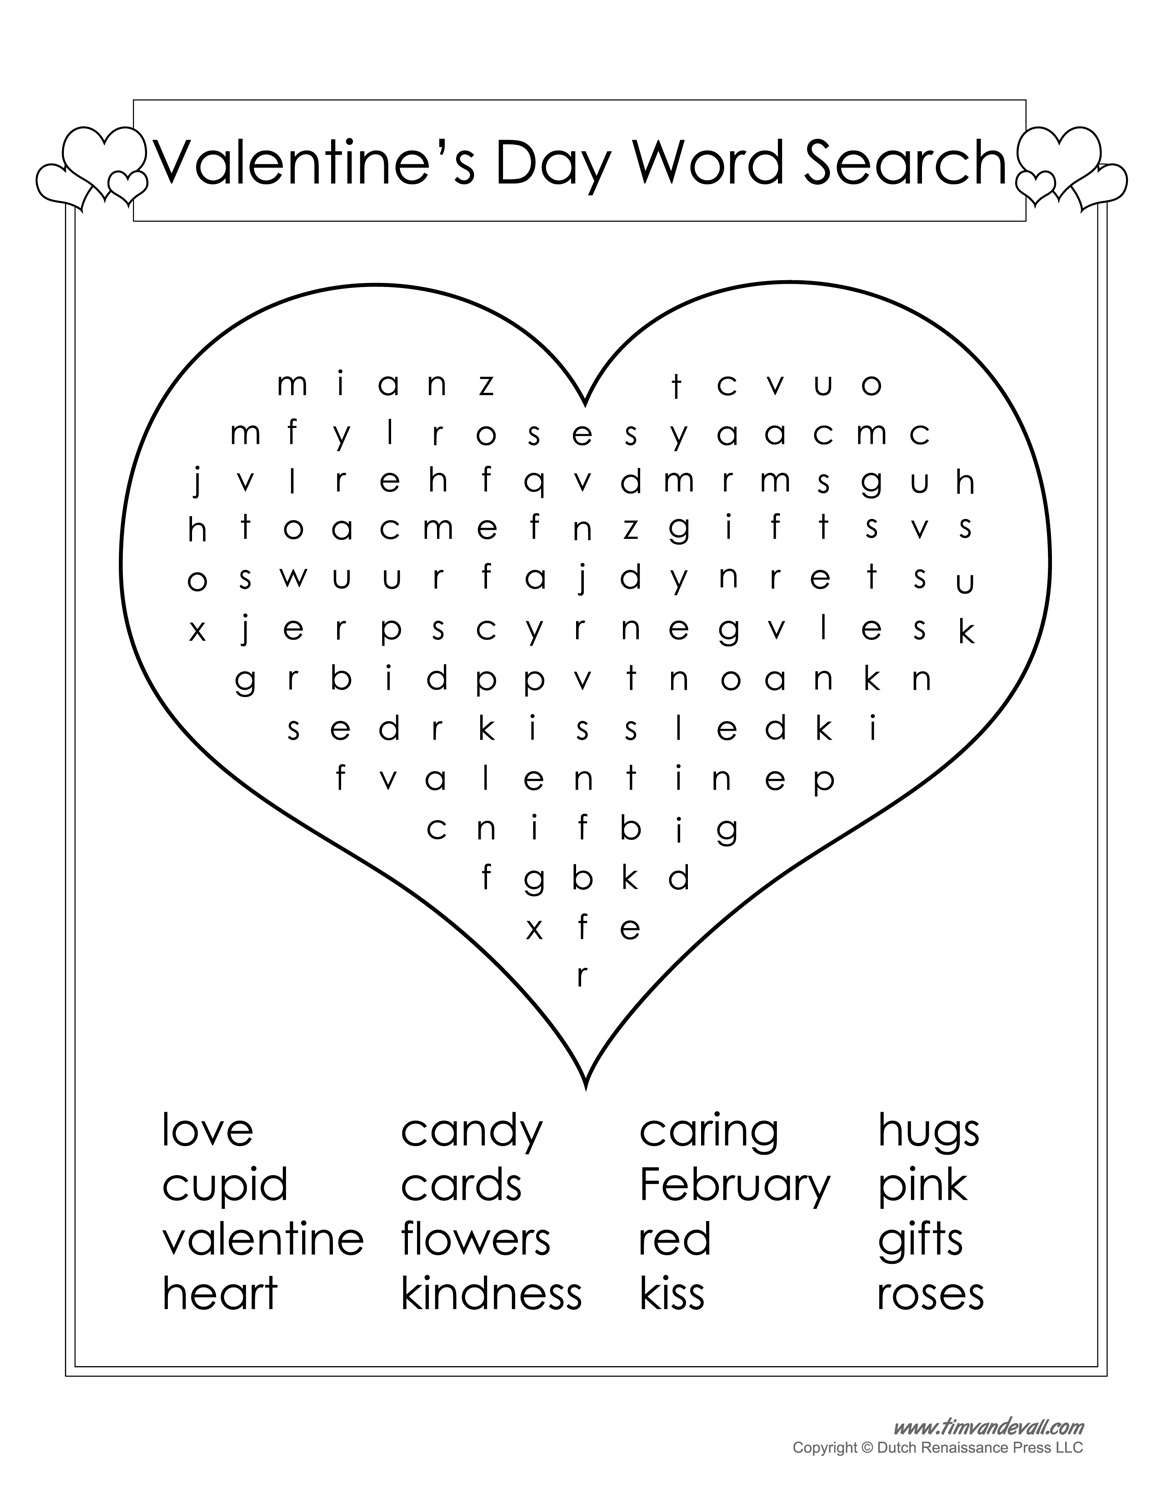 12 Valentine's Day Word Search | Kittybabylove - Printable Valentine Puzzles Games